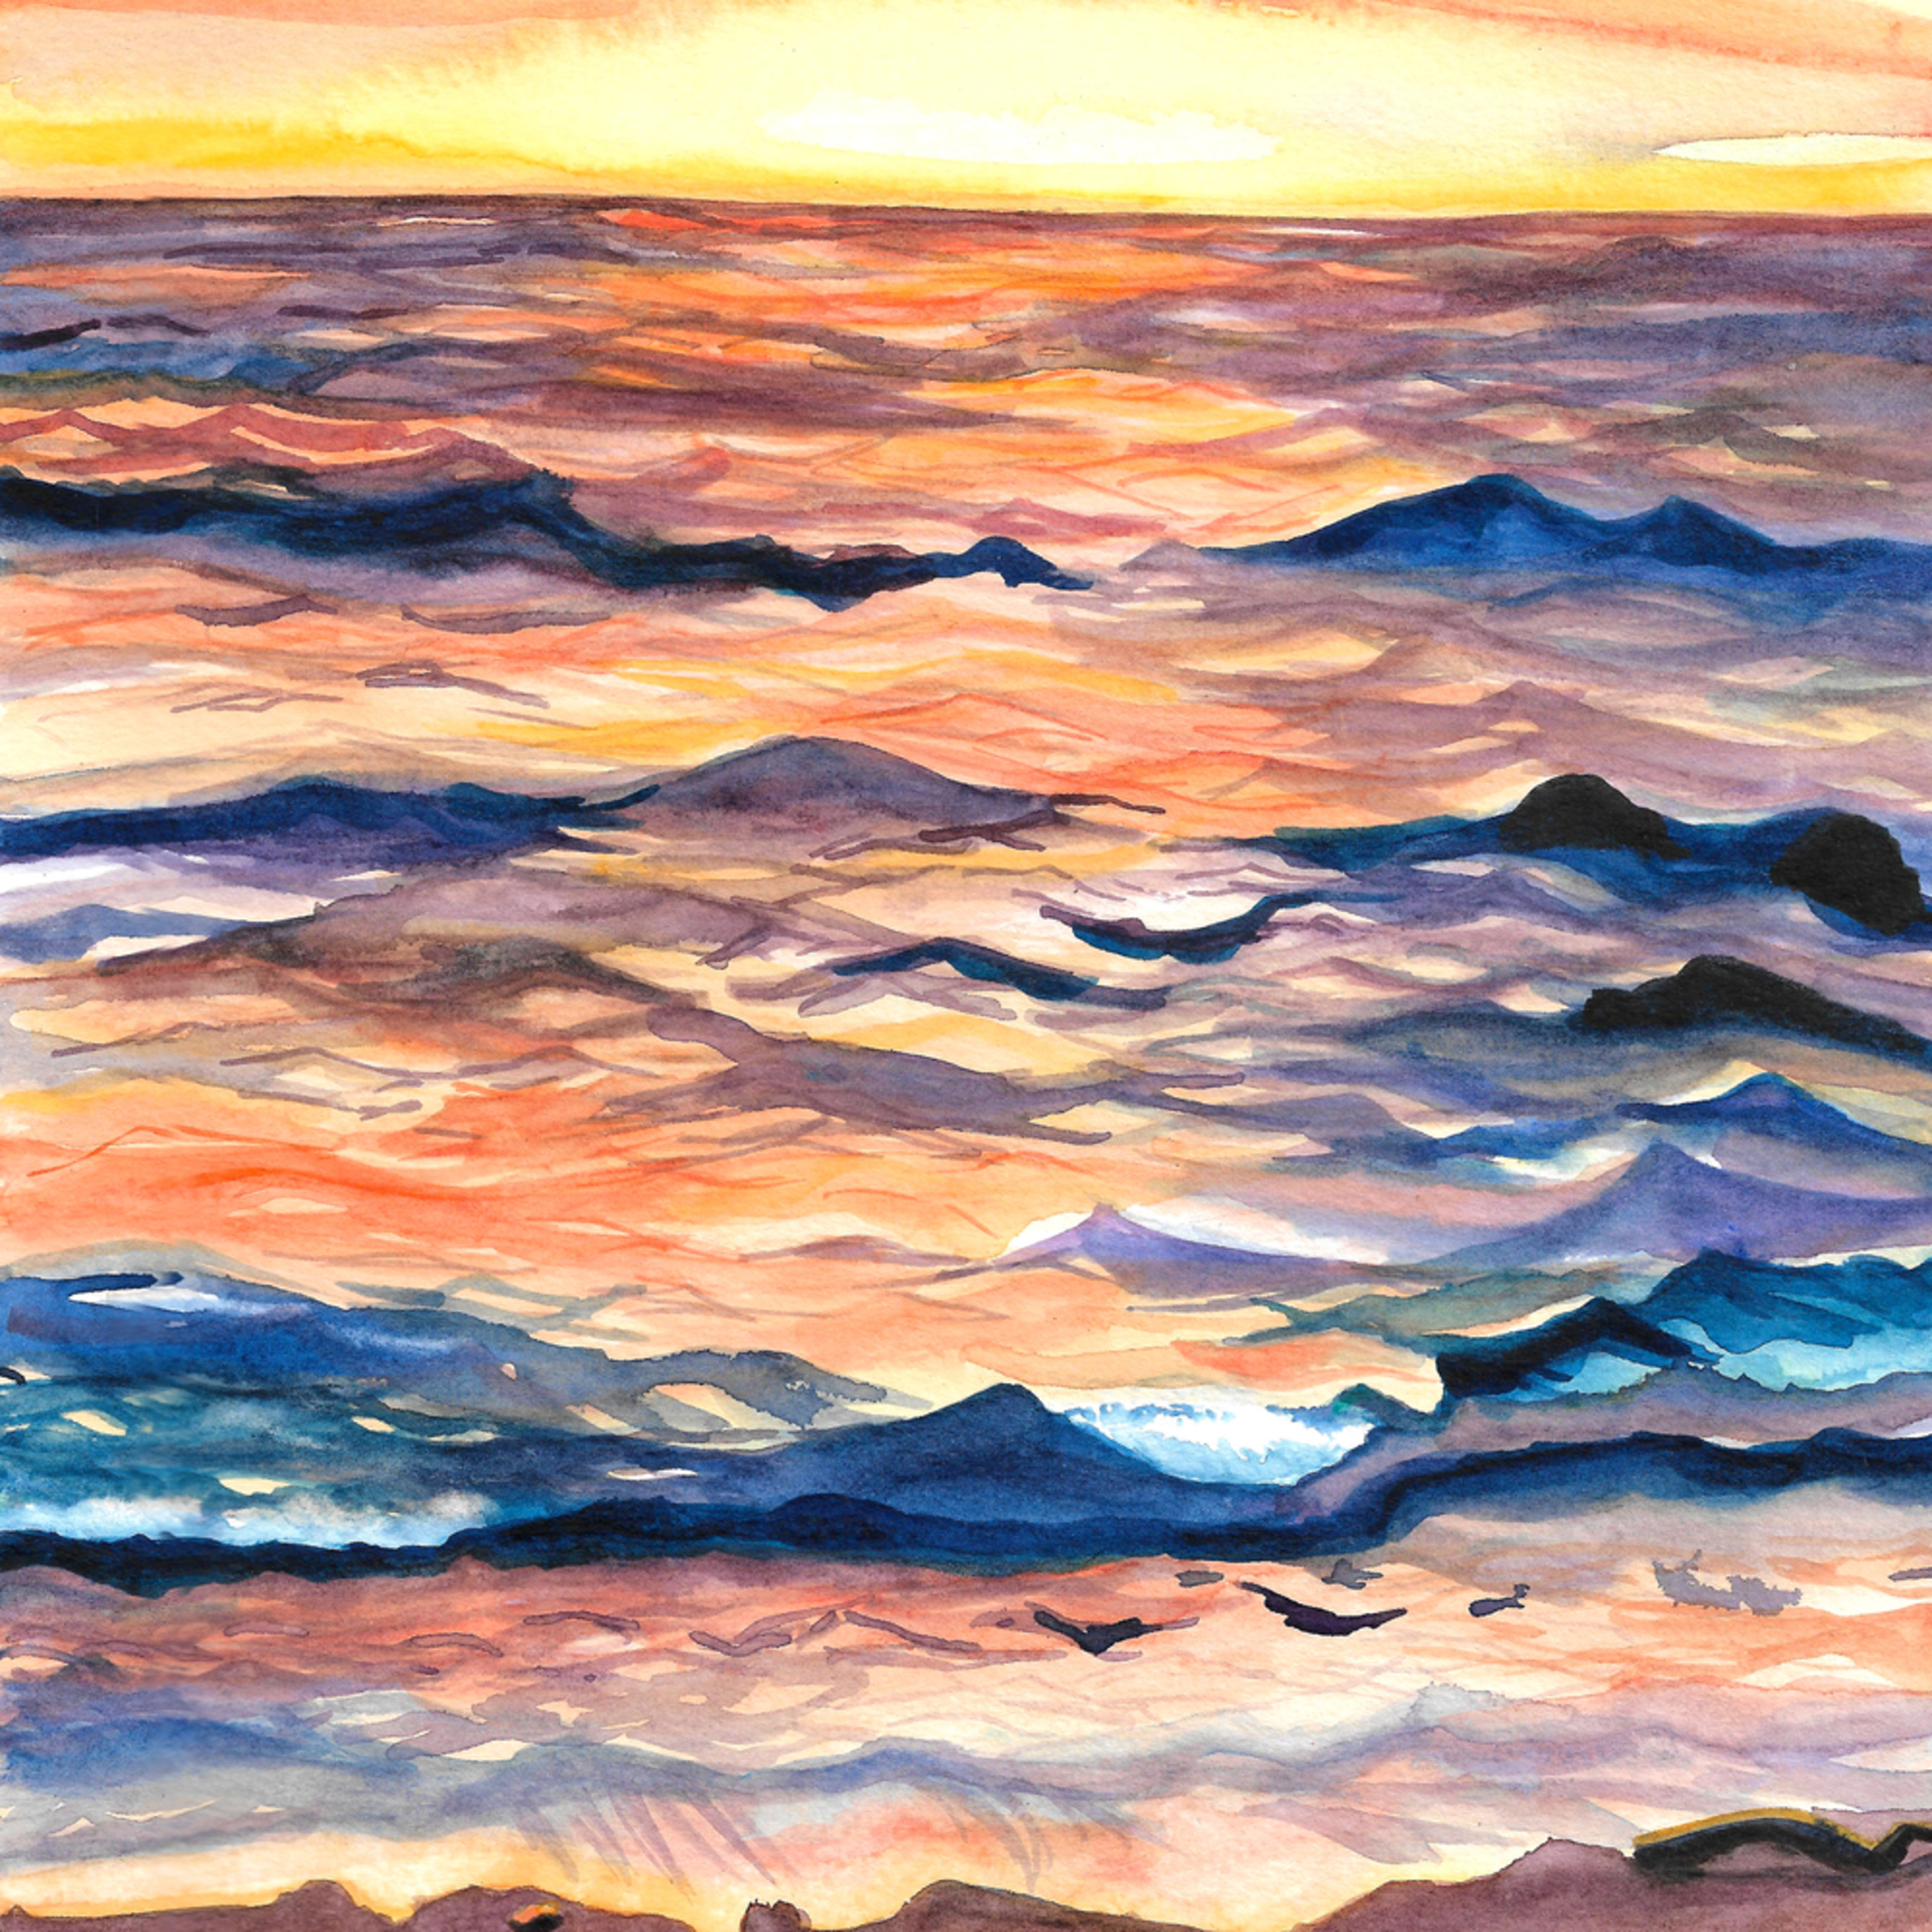 Erie waves 2020 brittany selfe 9 x 12 watercolor kopzat